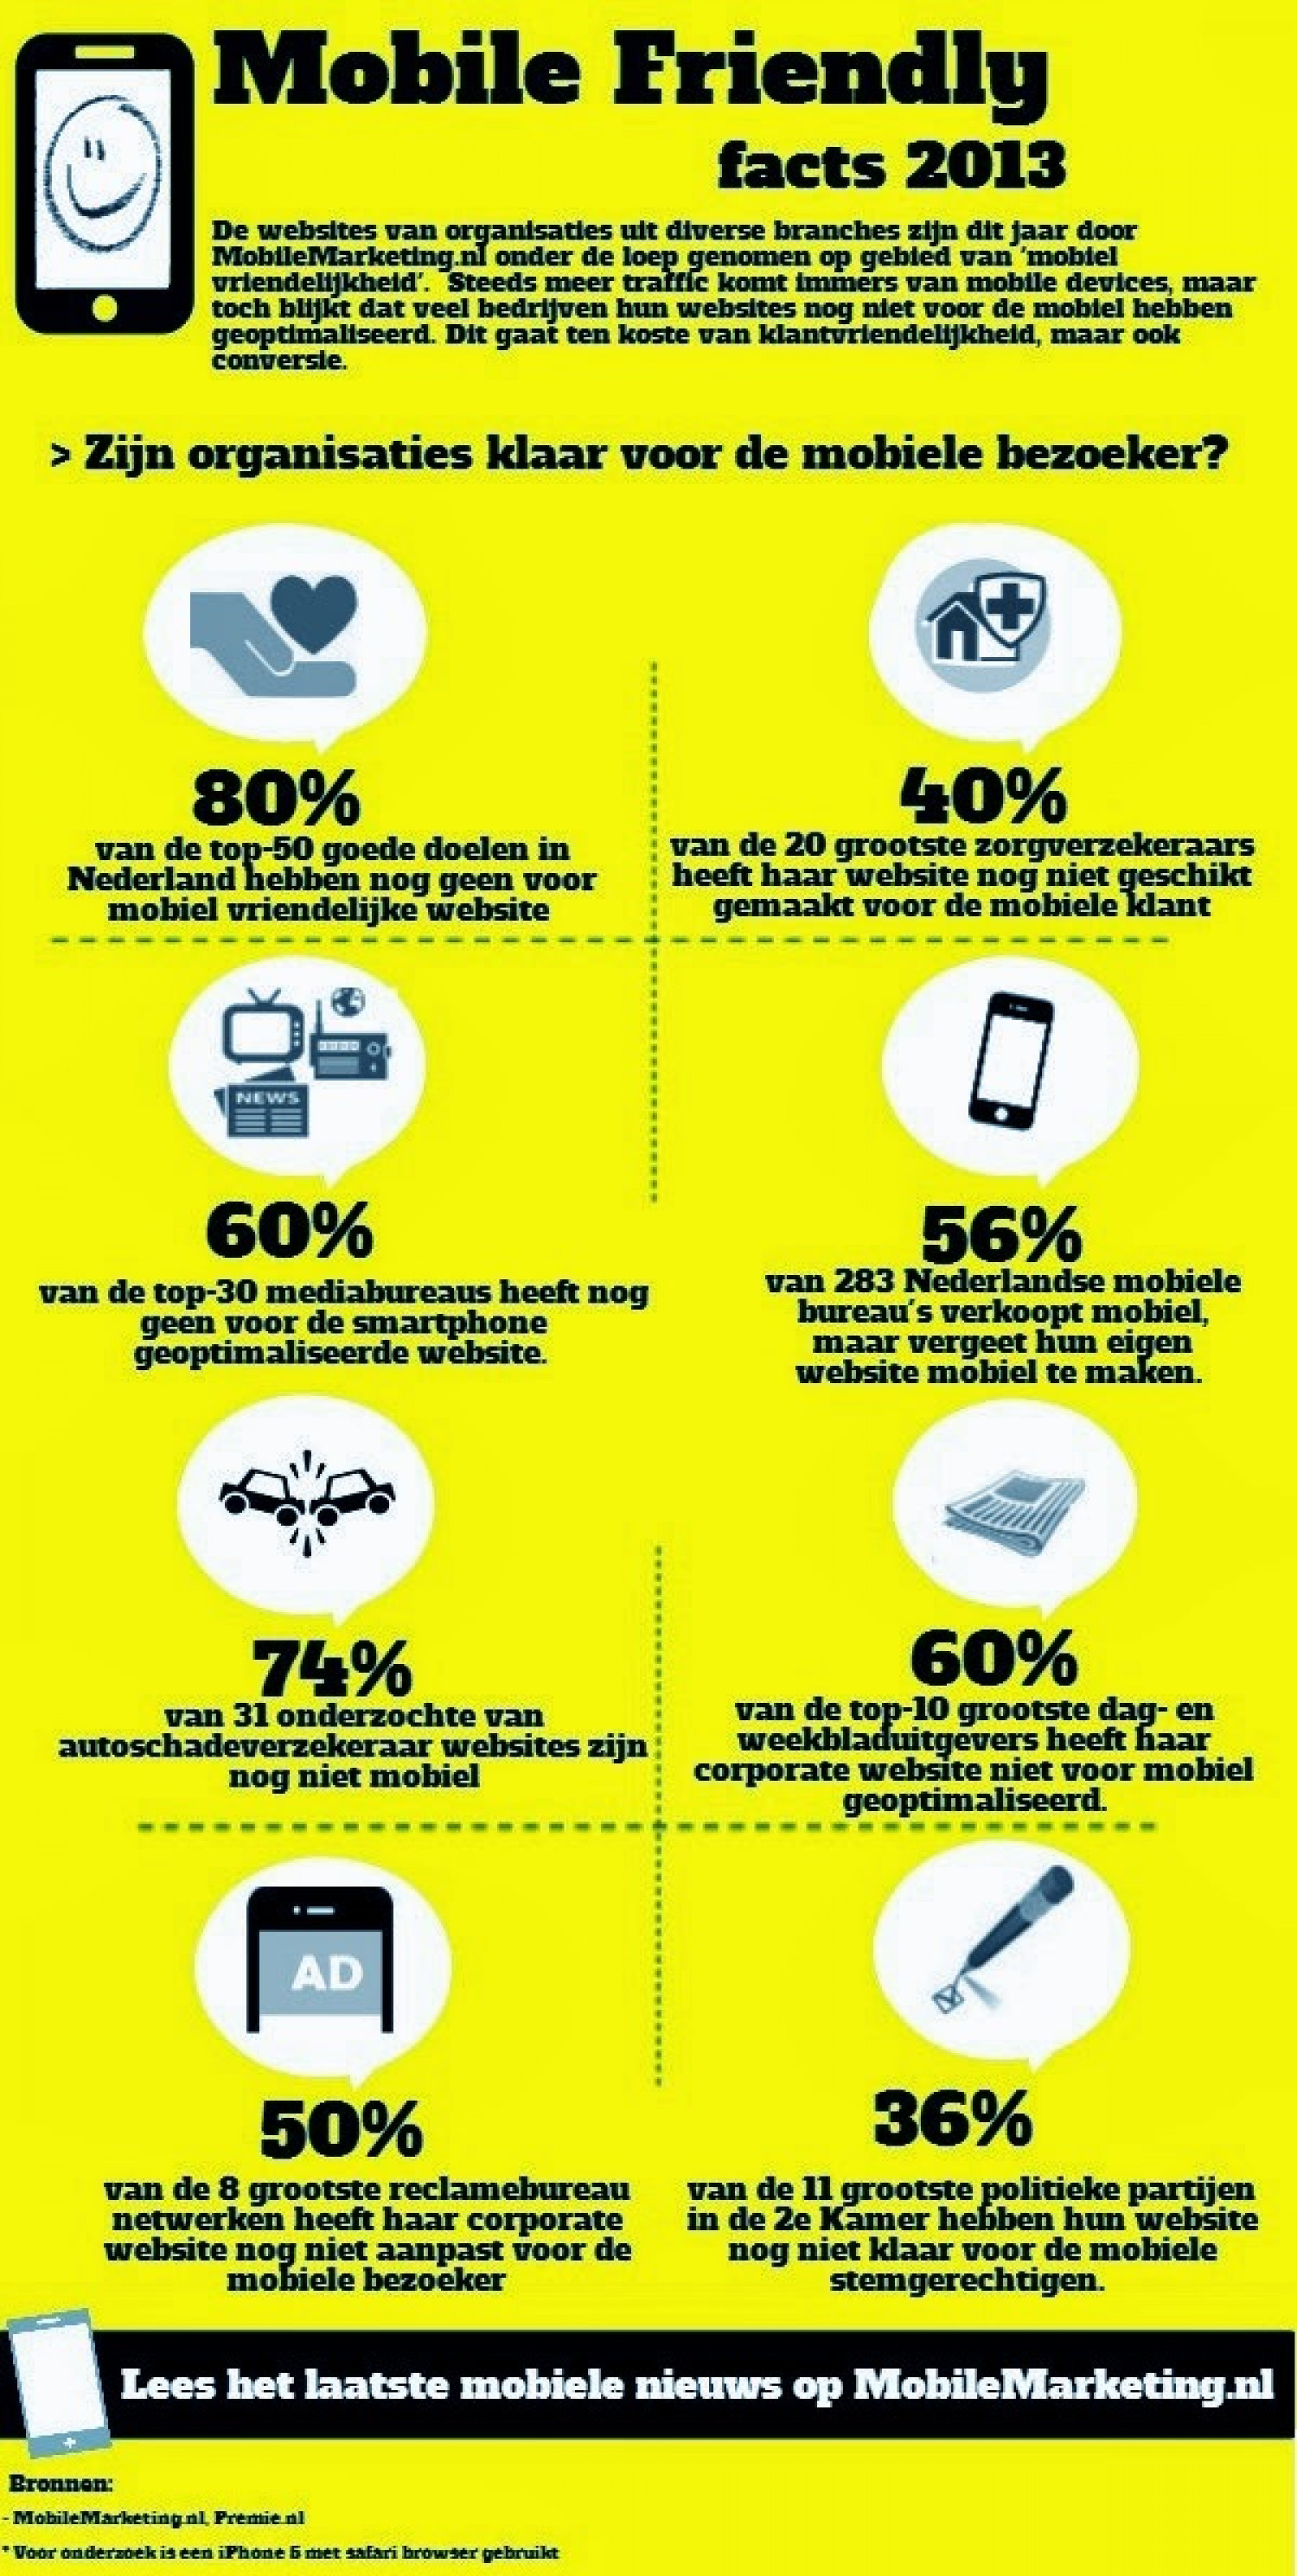 Mobile Friendly Facts 2013 Infographic